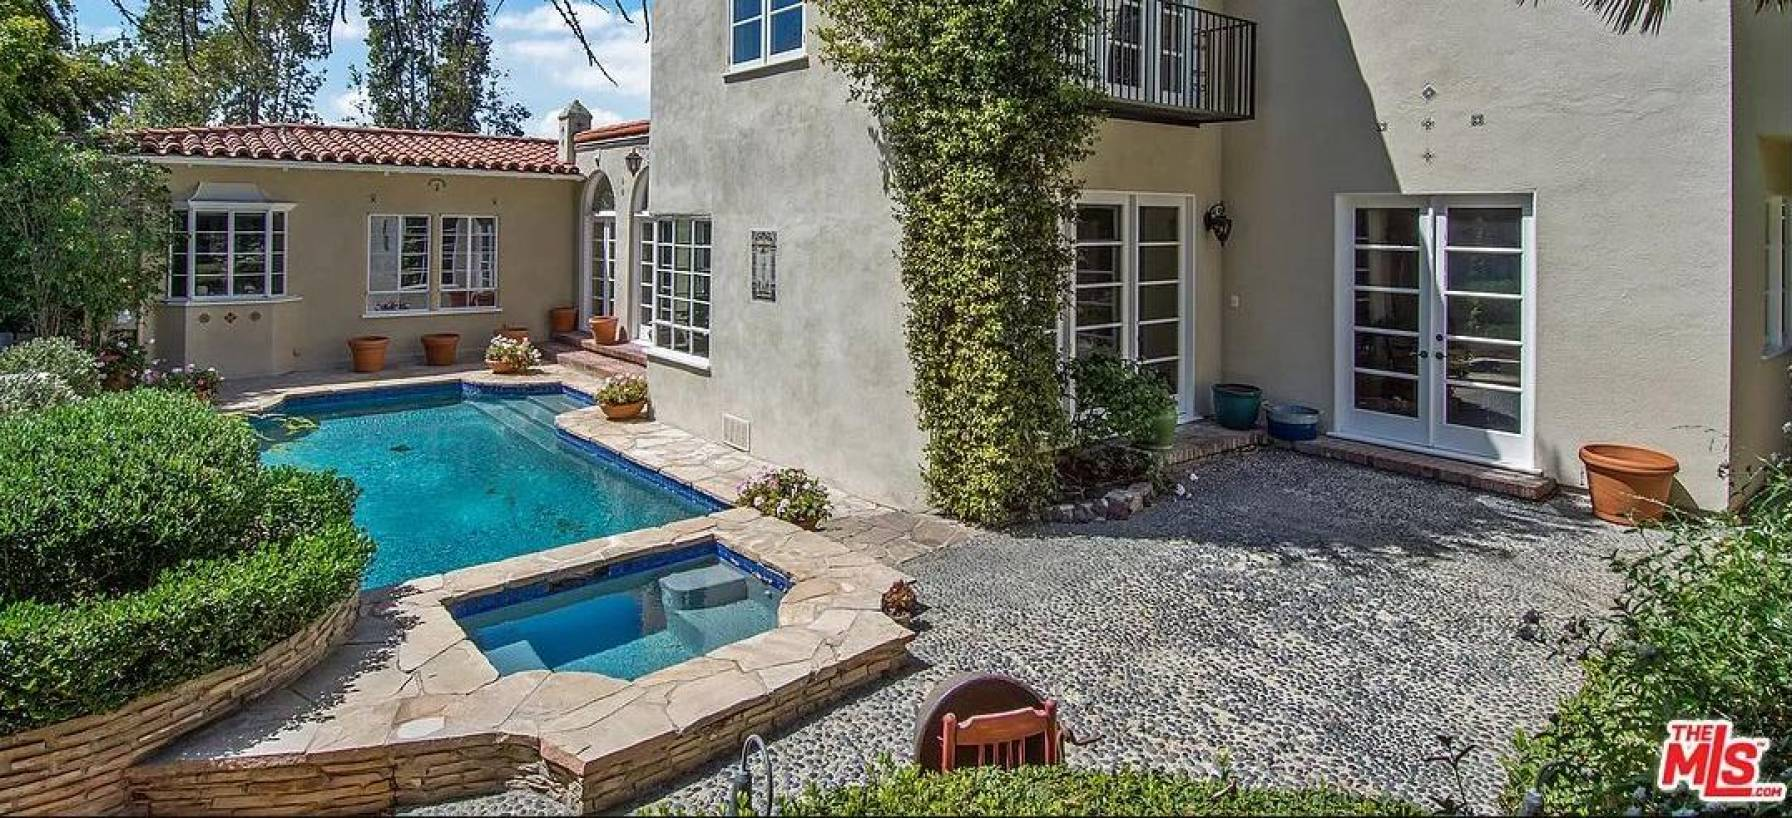 Harvey Levin's Former Home in Los Angeles until August 2015